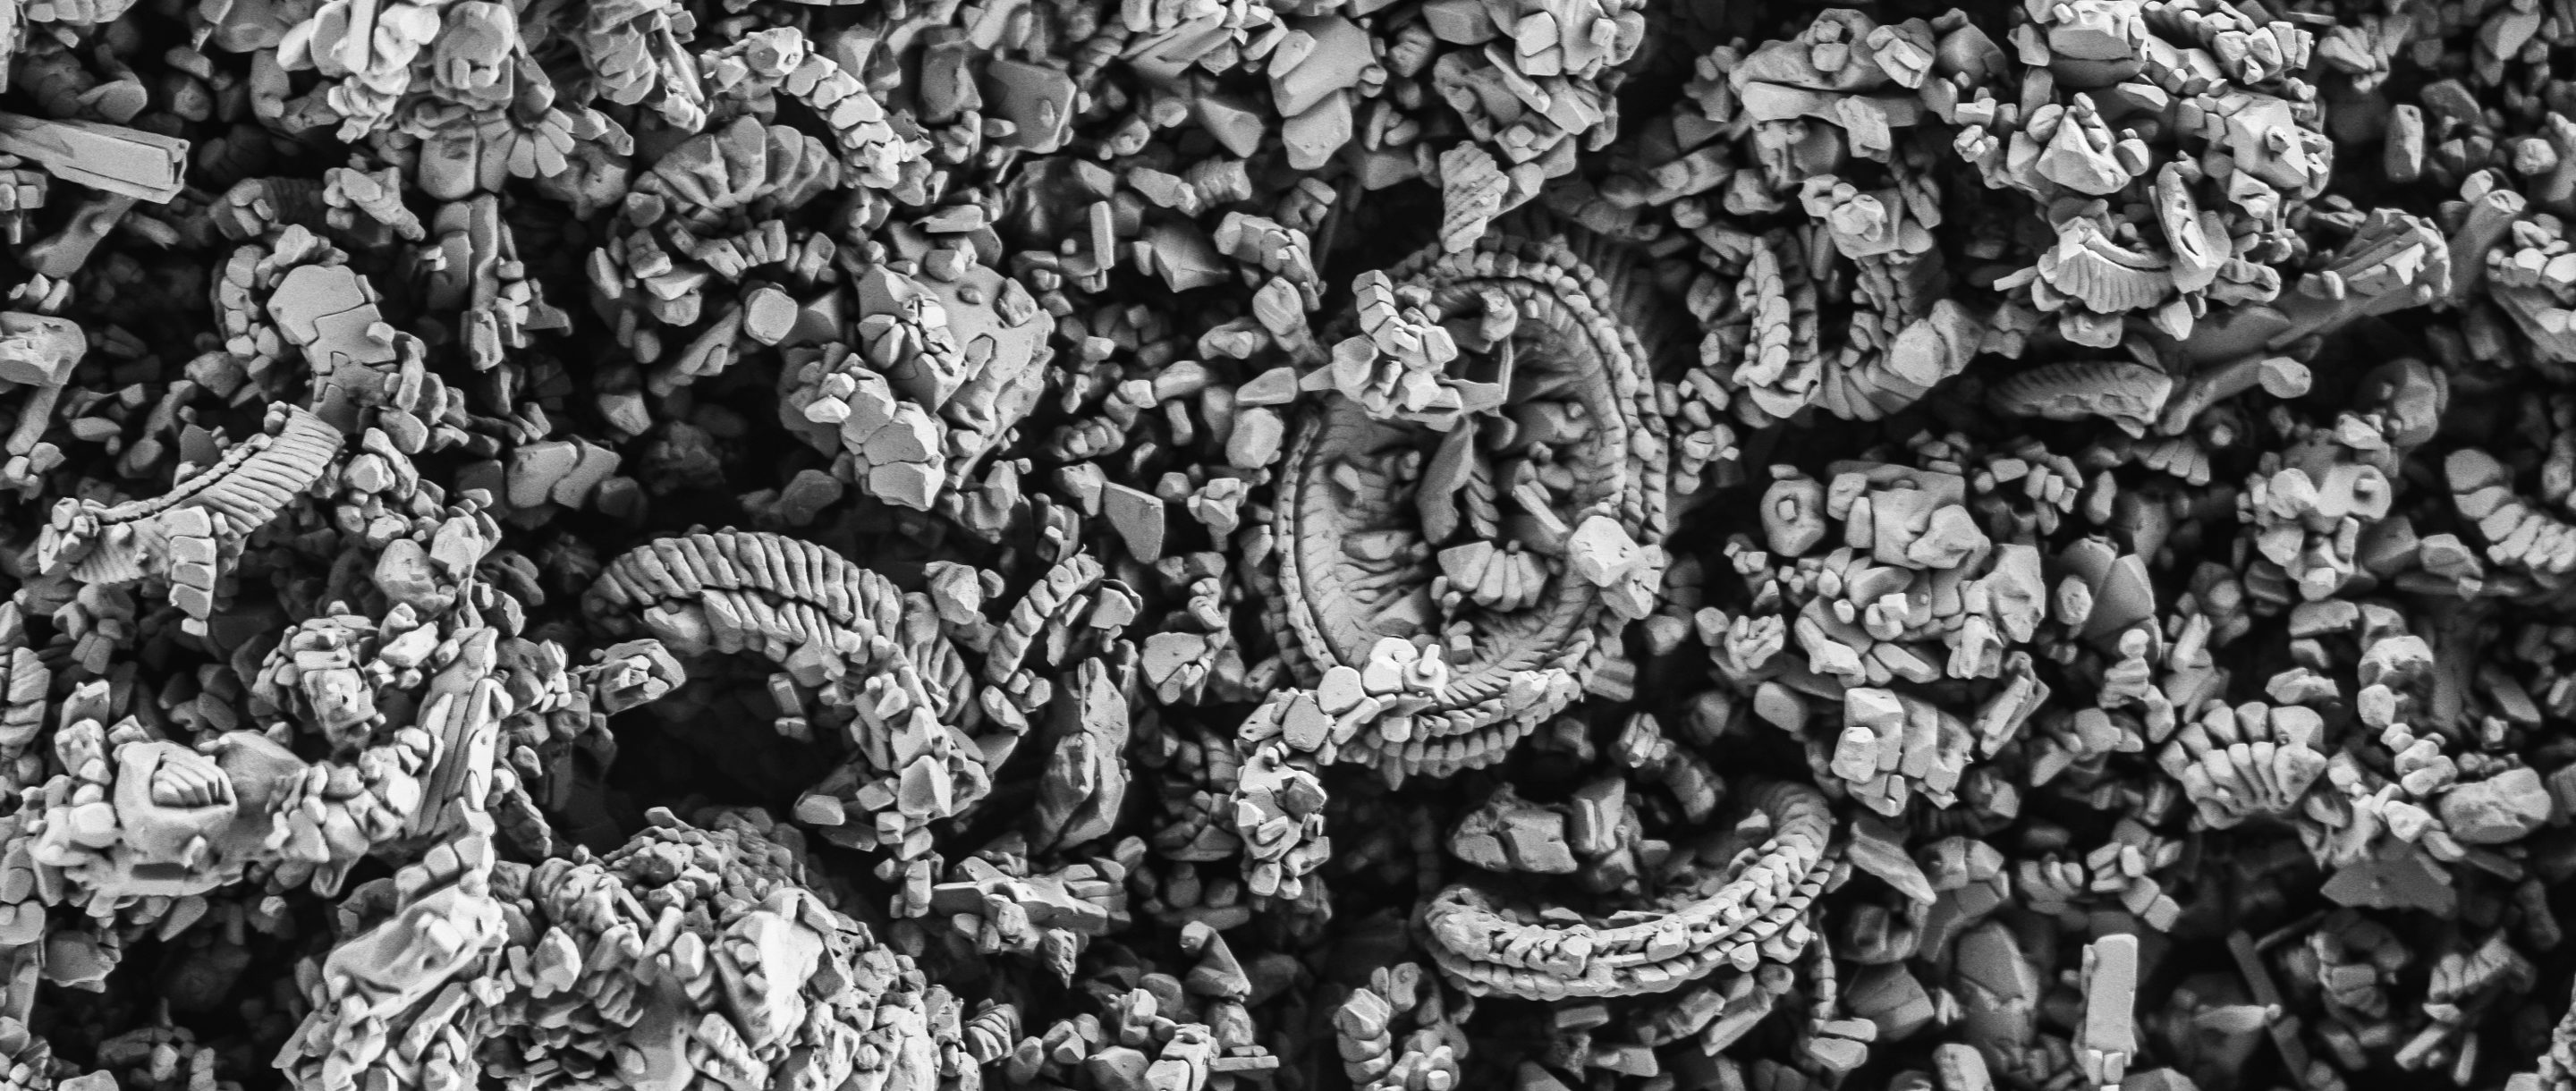 Scanning electron micrograph of a cluster of coccolithophores.